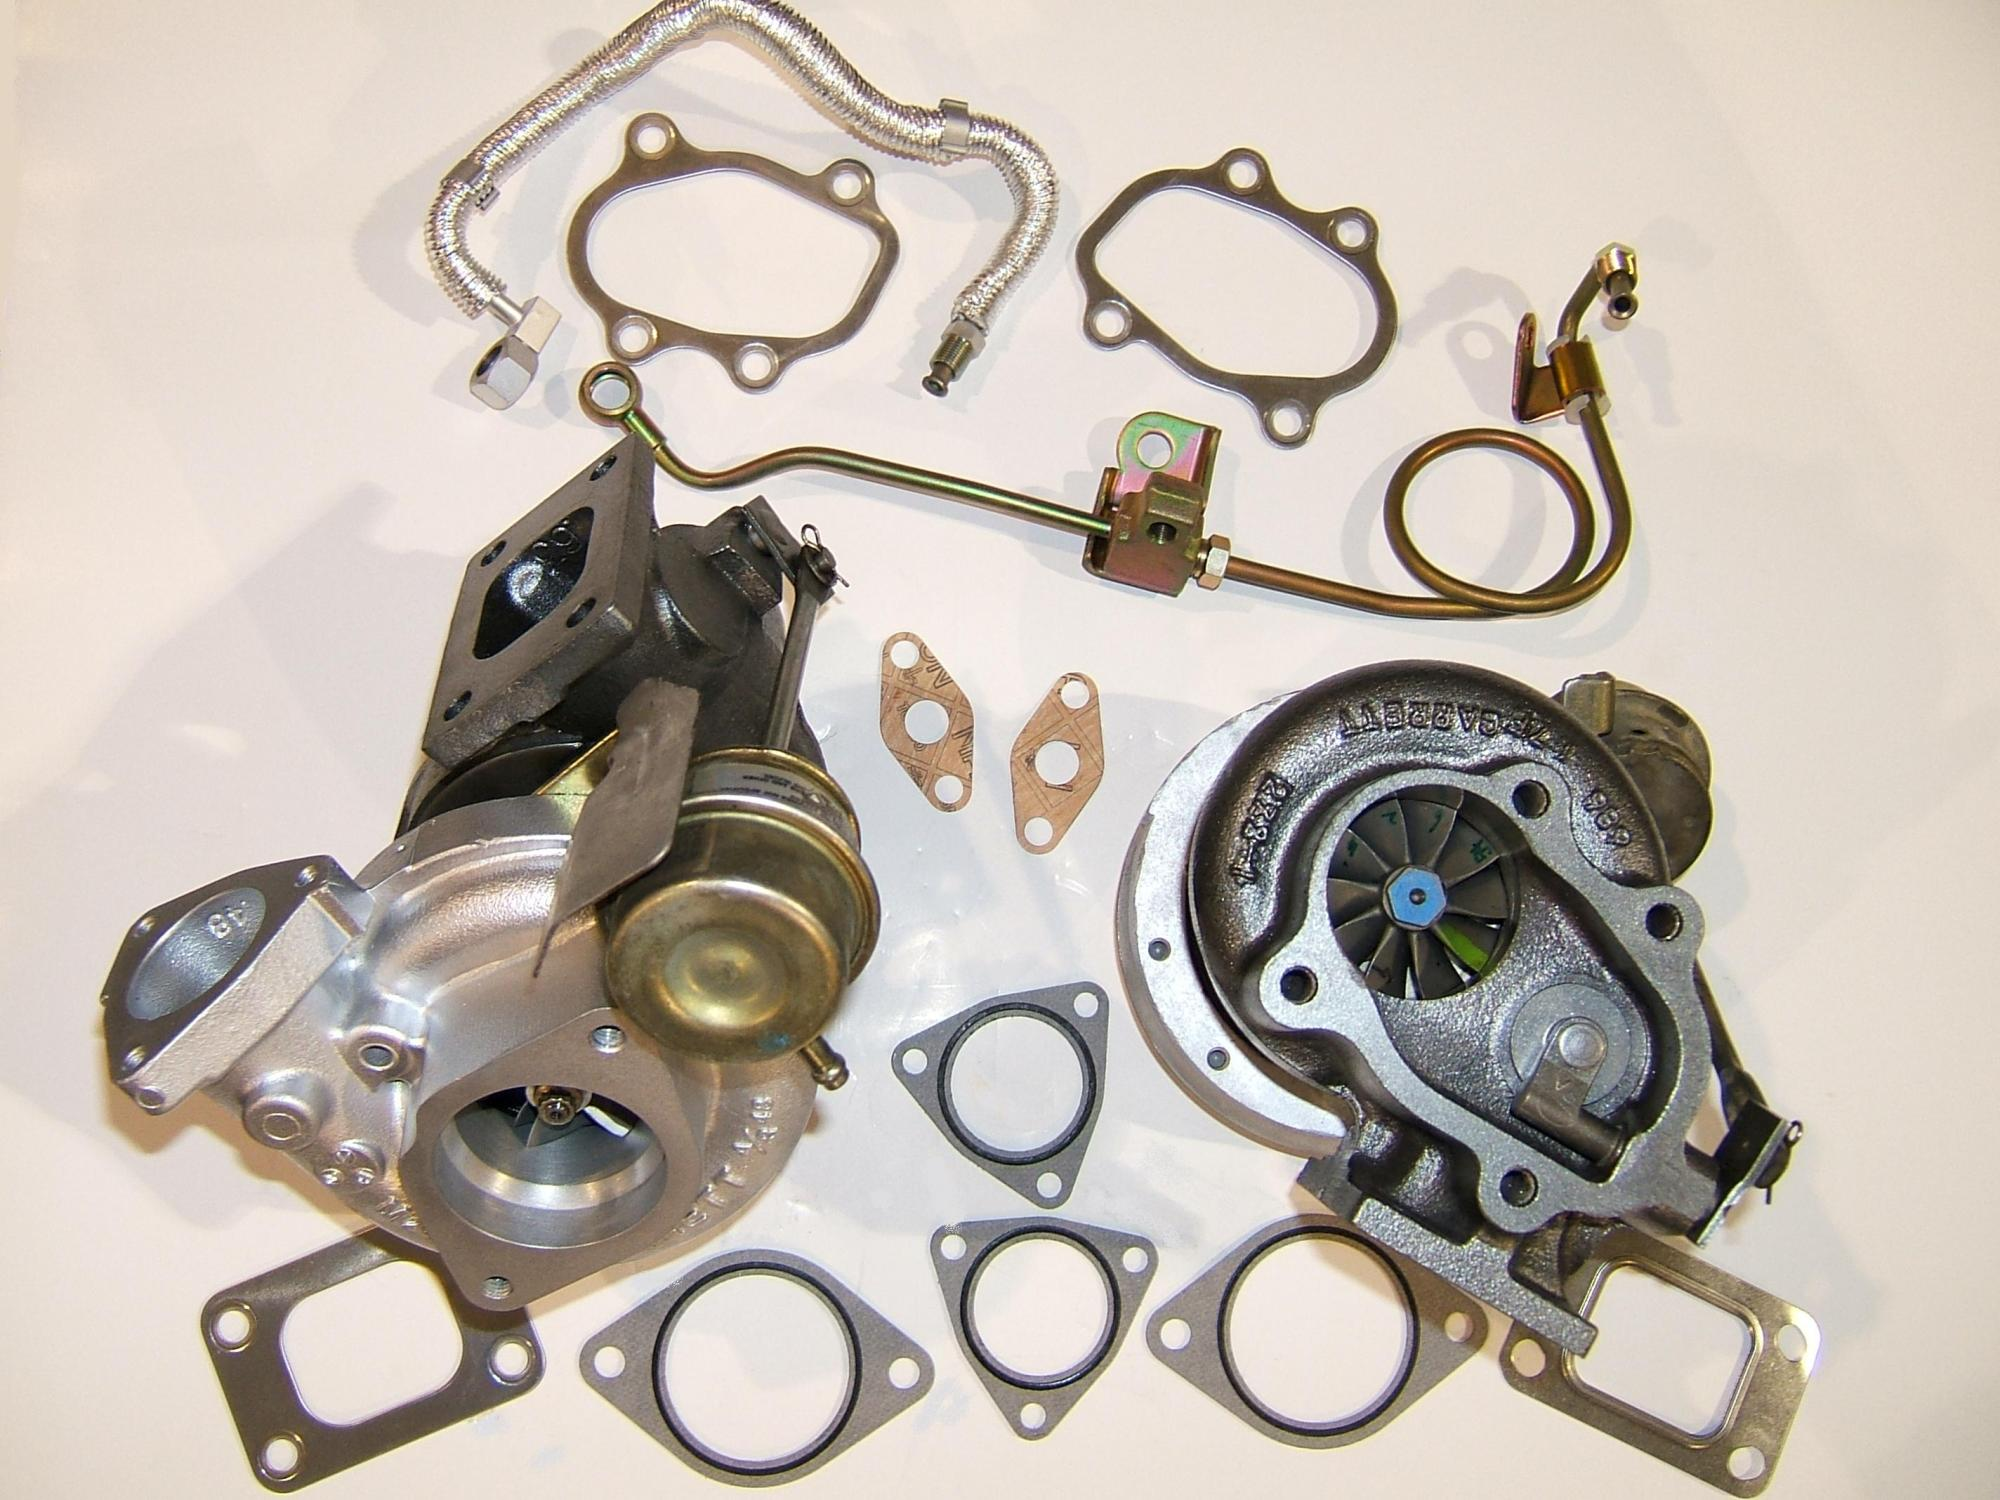 hight resolution of gt525 turbo kit 1 895 00 1 795 00